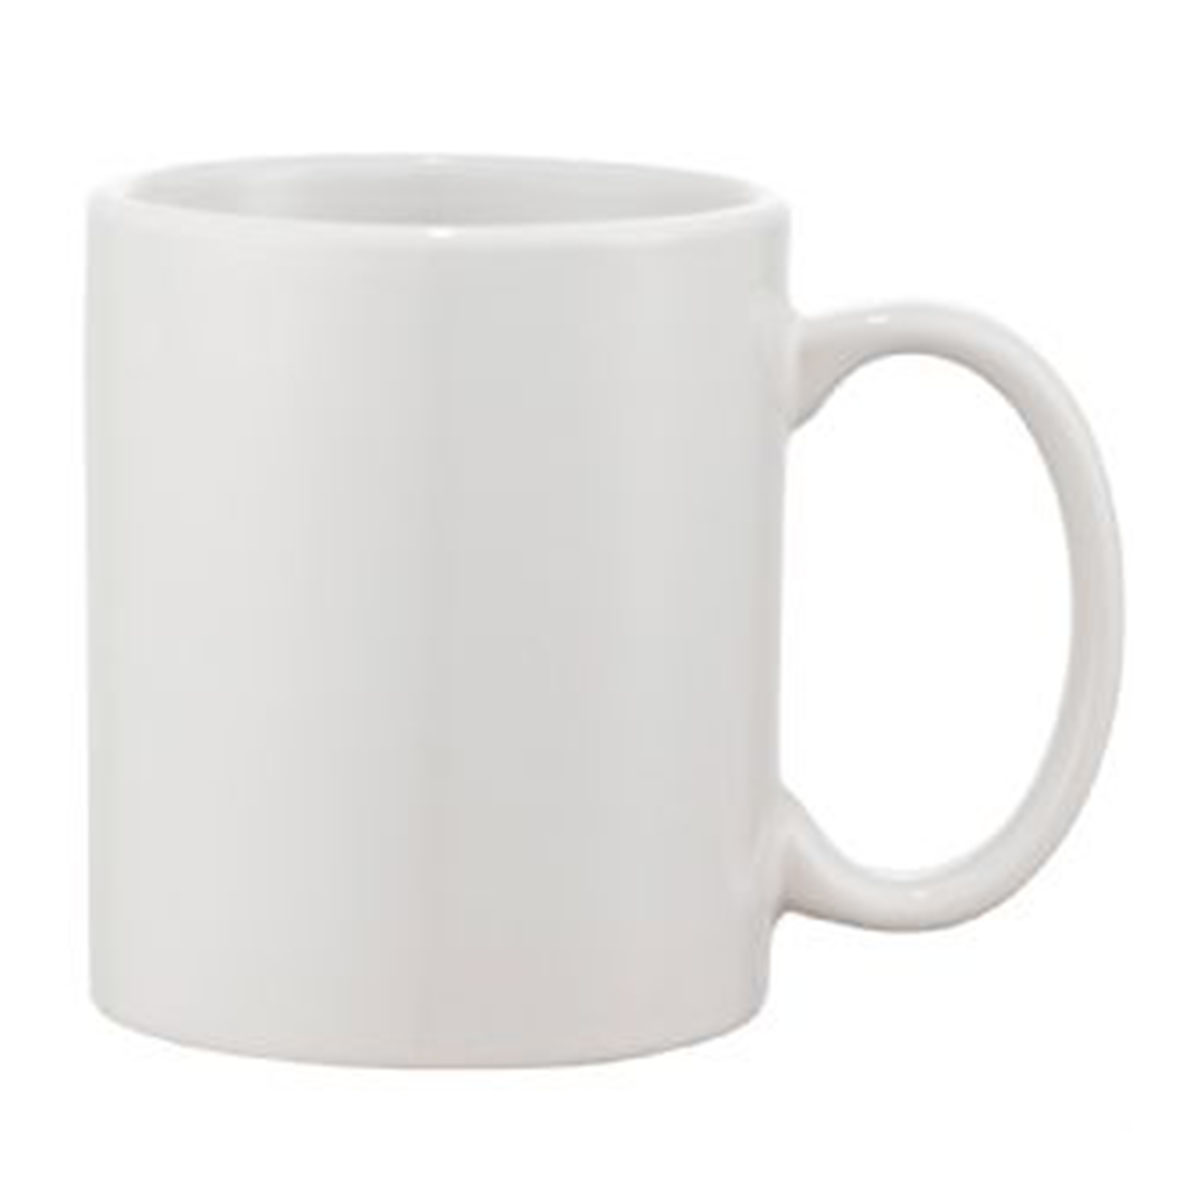 Bounty Ceramic Mug-White.